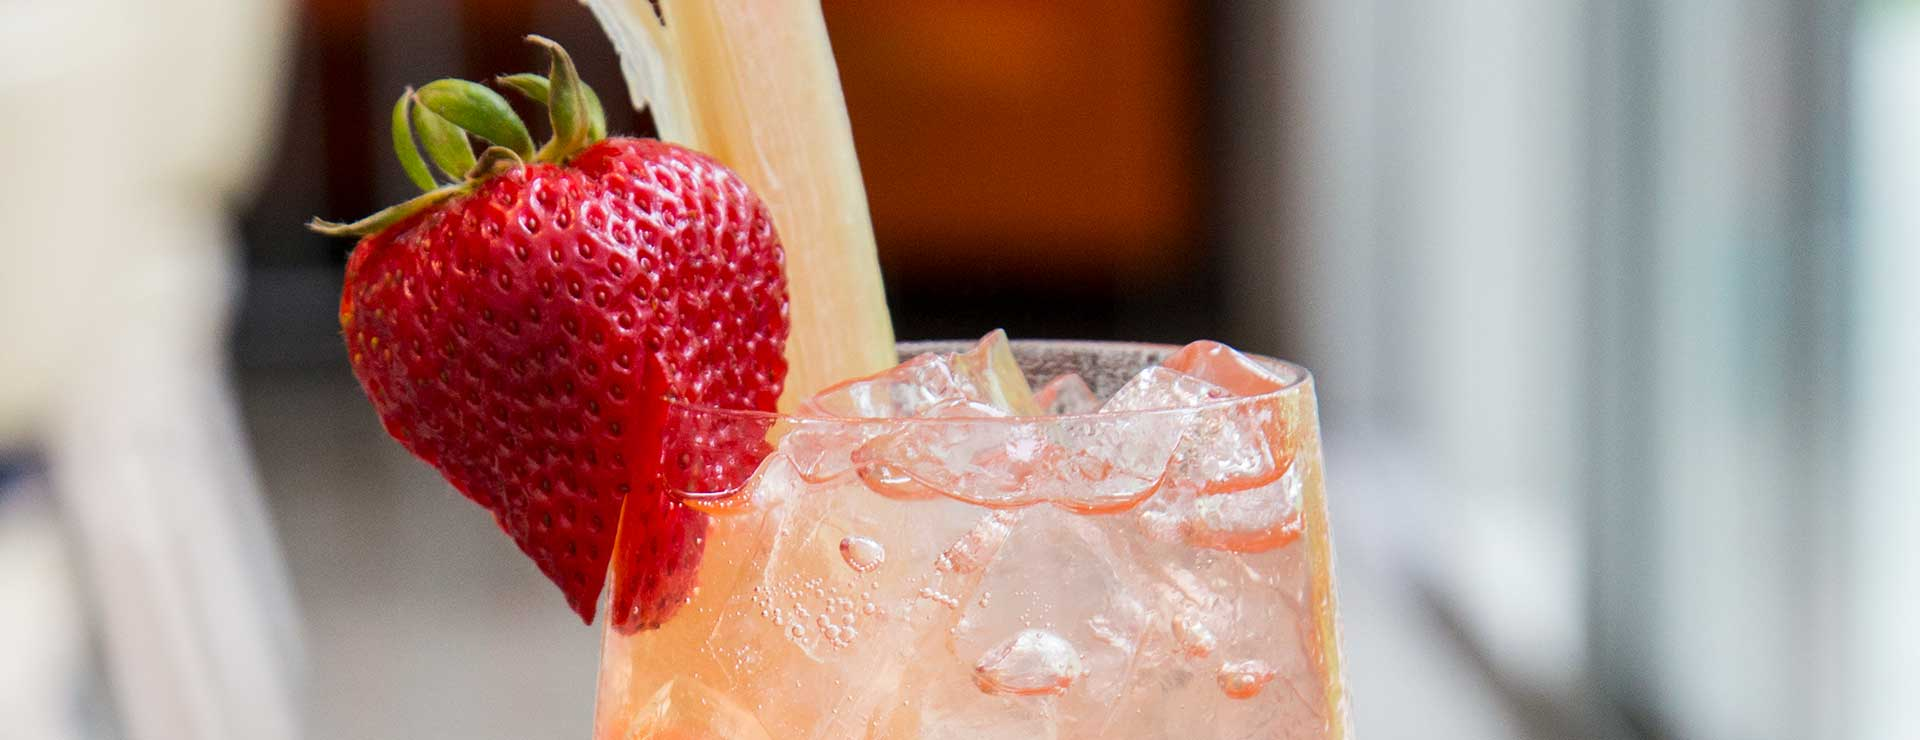 strawberry spritzer in glass